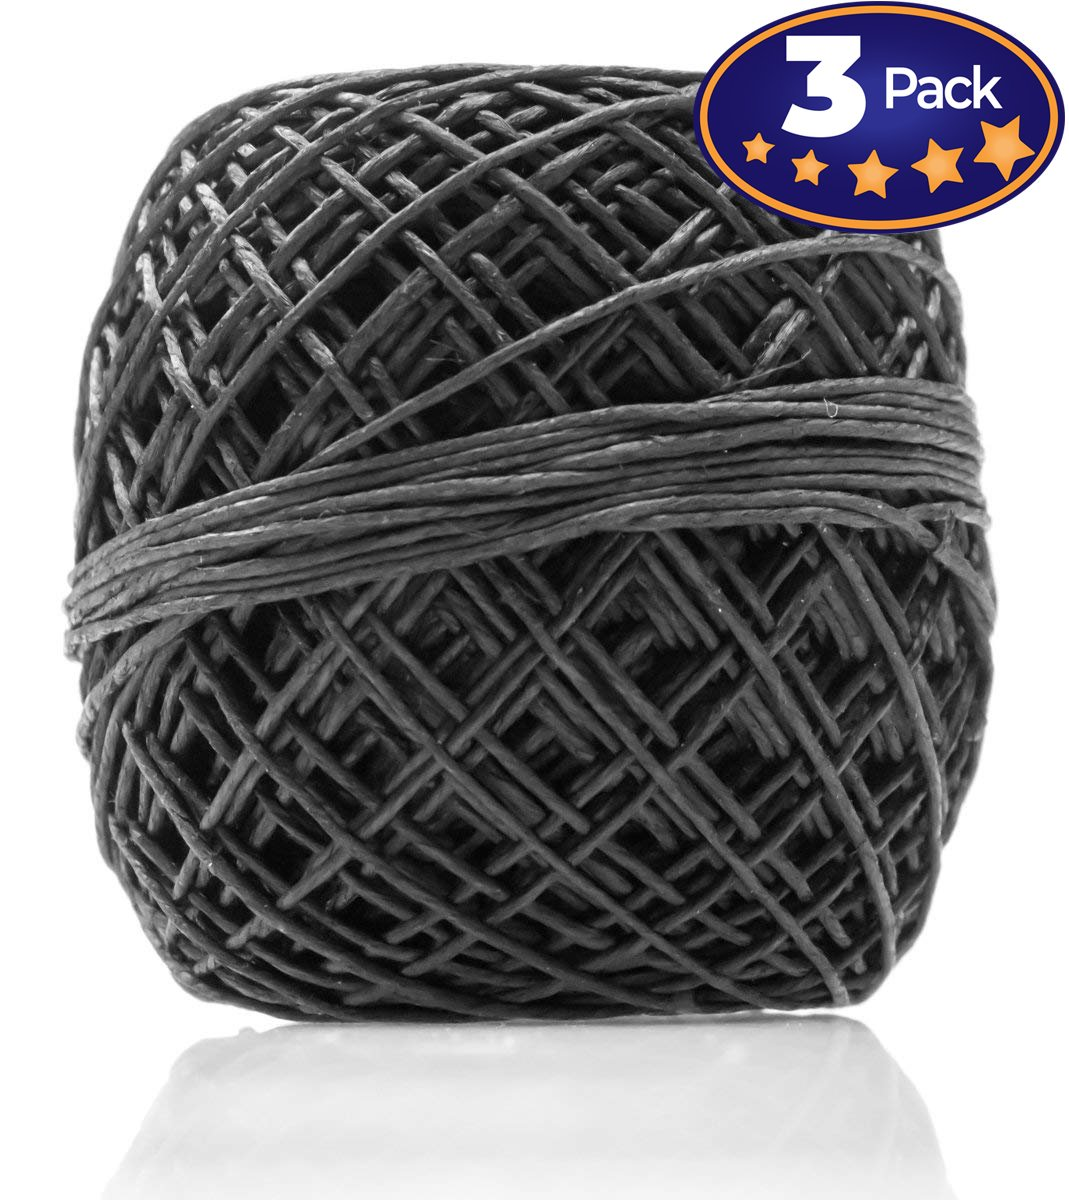 Black Hemp Cord 200 3 Pack = 600 Feet Total! Perfect For Jewelry & Necklace Making, Candle Wicks, or Decorative String. 20lb Weight, 1mm Thick & Lightly Waxed Twine For Easy Handling. American Hemp Suppliers 4336807330